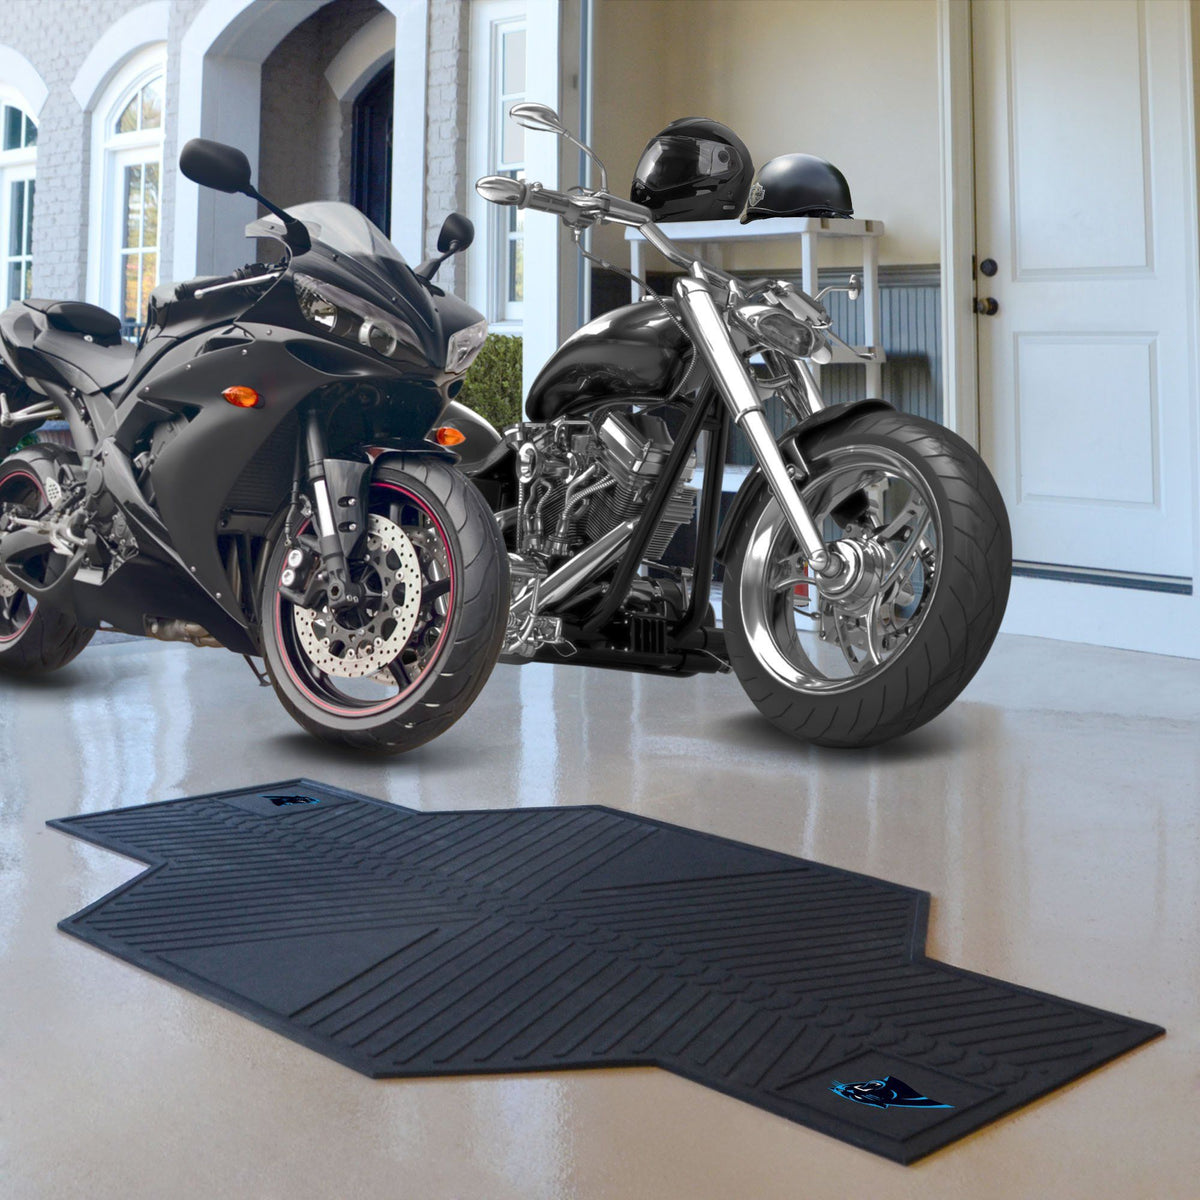 "NFL - Motorcycle Mat, 82.5"" x 42"" NFL Mats, Motorcycle Accessory, Motorcycle Mat, NFL, Auto Fan Mats Carolina Panthers"